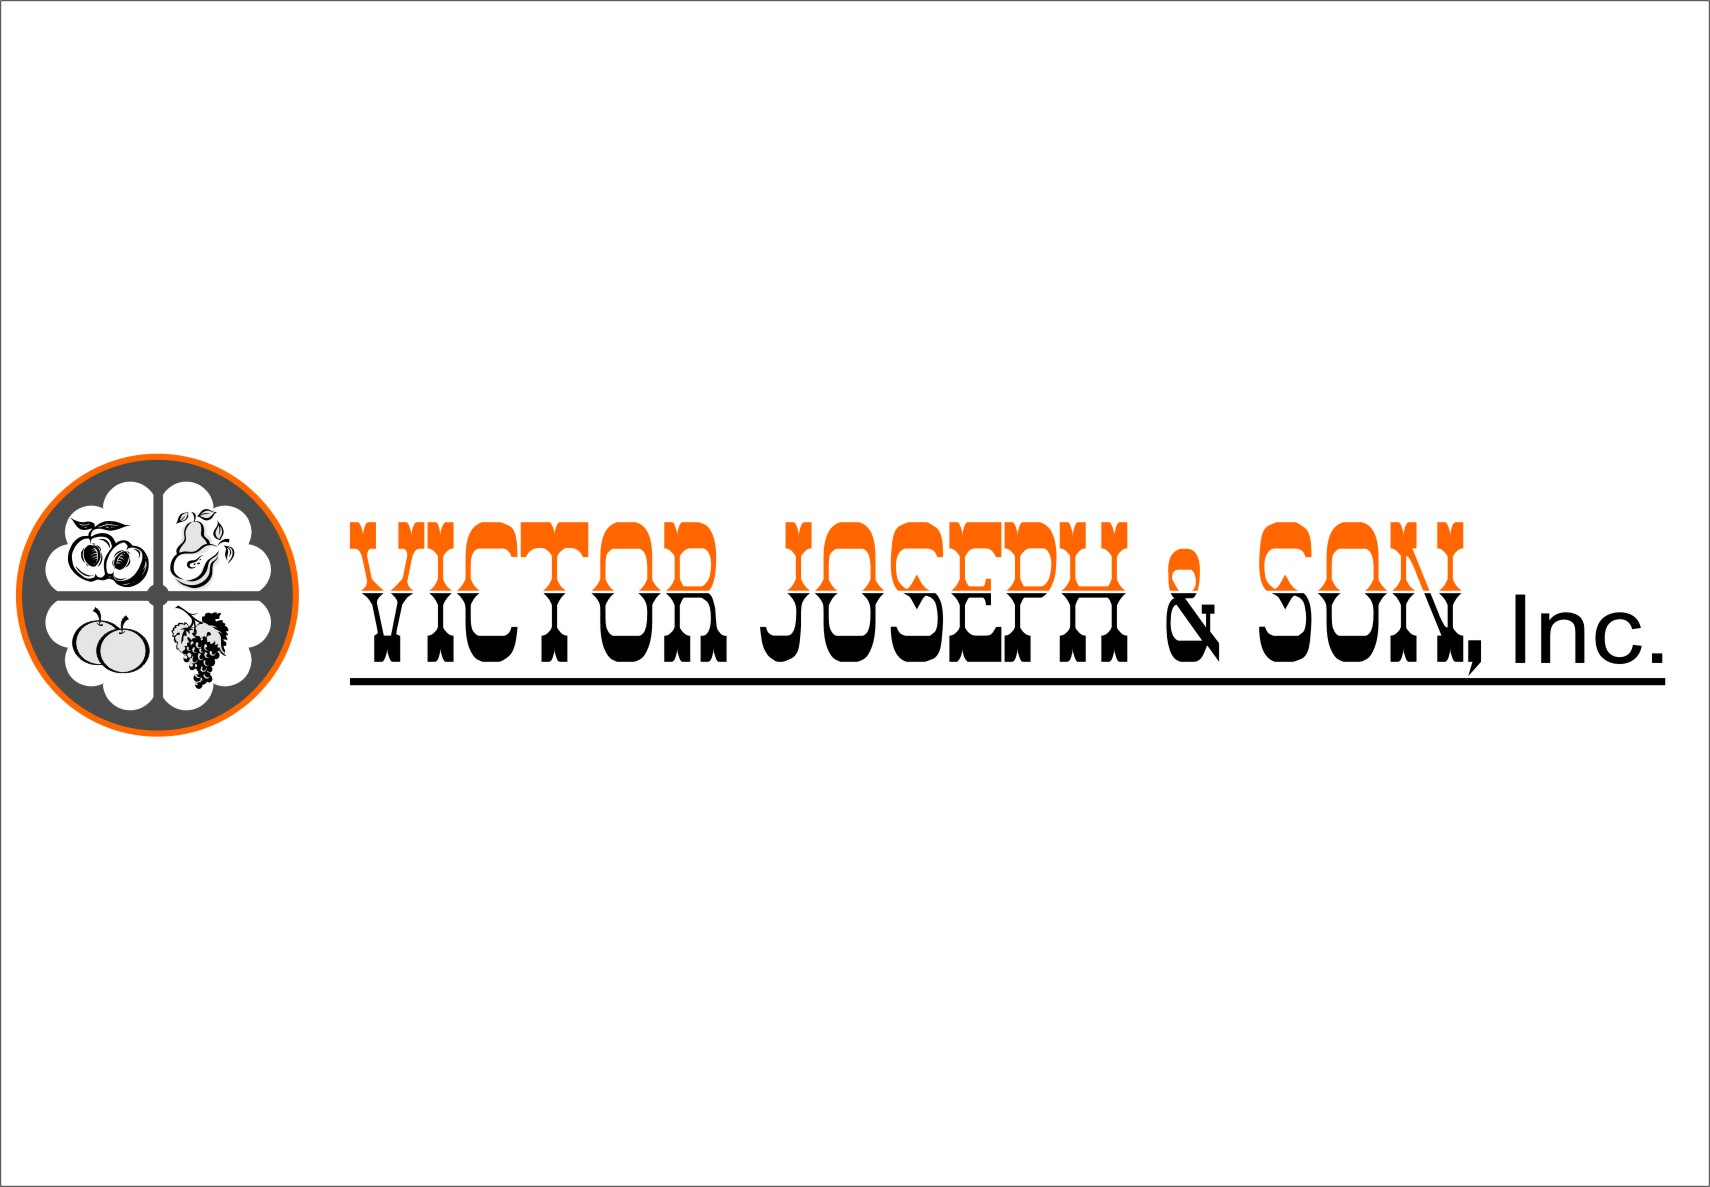 Logo Design by RasYa Muhammad Athaya - Entry No. 84 in the Logo Design Contest Imaginative Logo Design for Victor Joseph & Son, Inc..